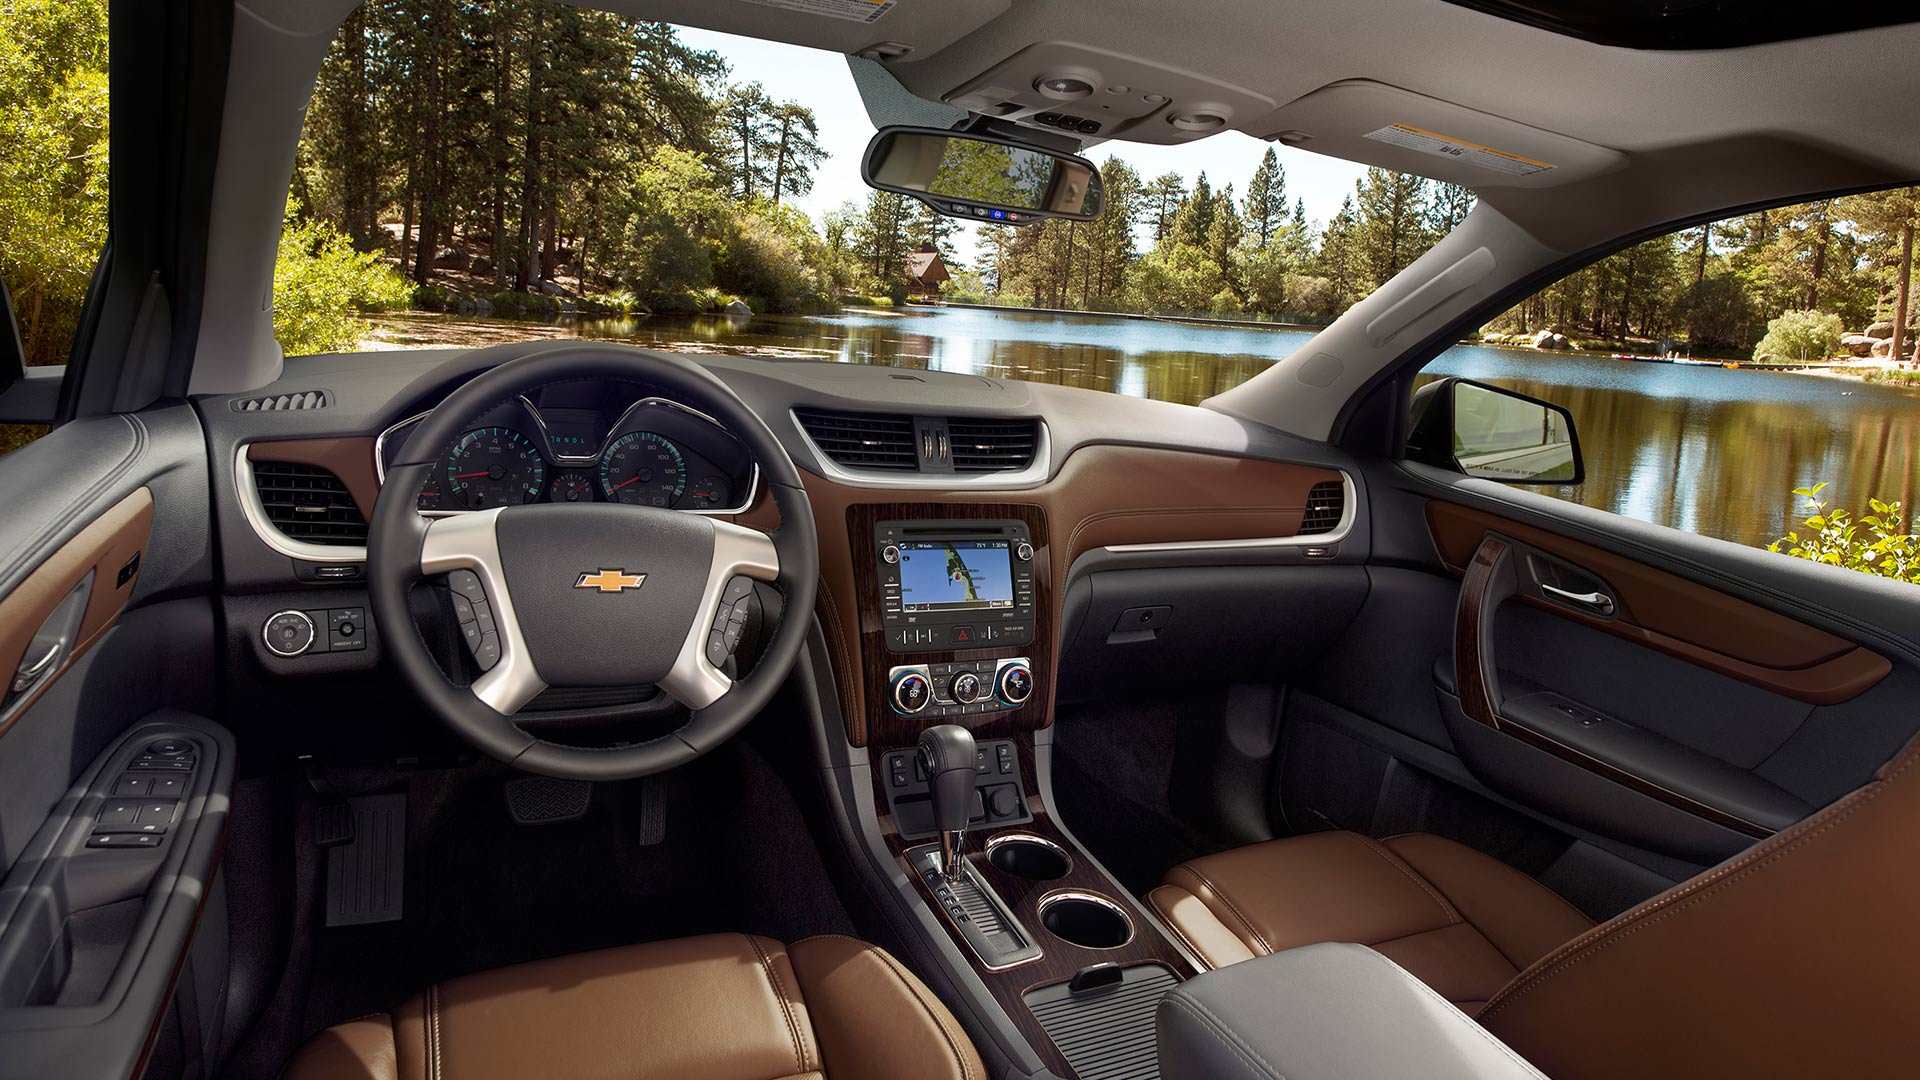 Interior of the 2017 Chevrolet Traverse